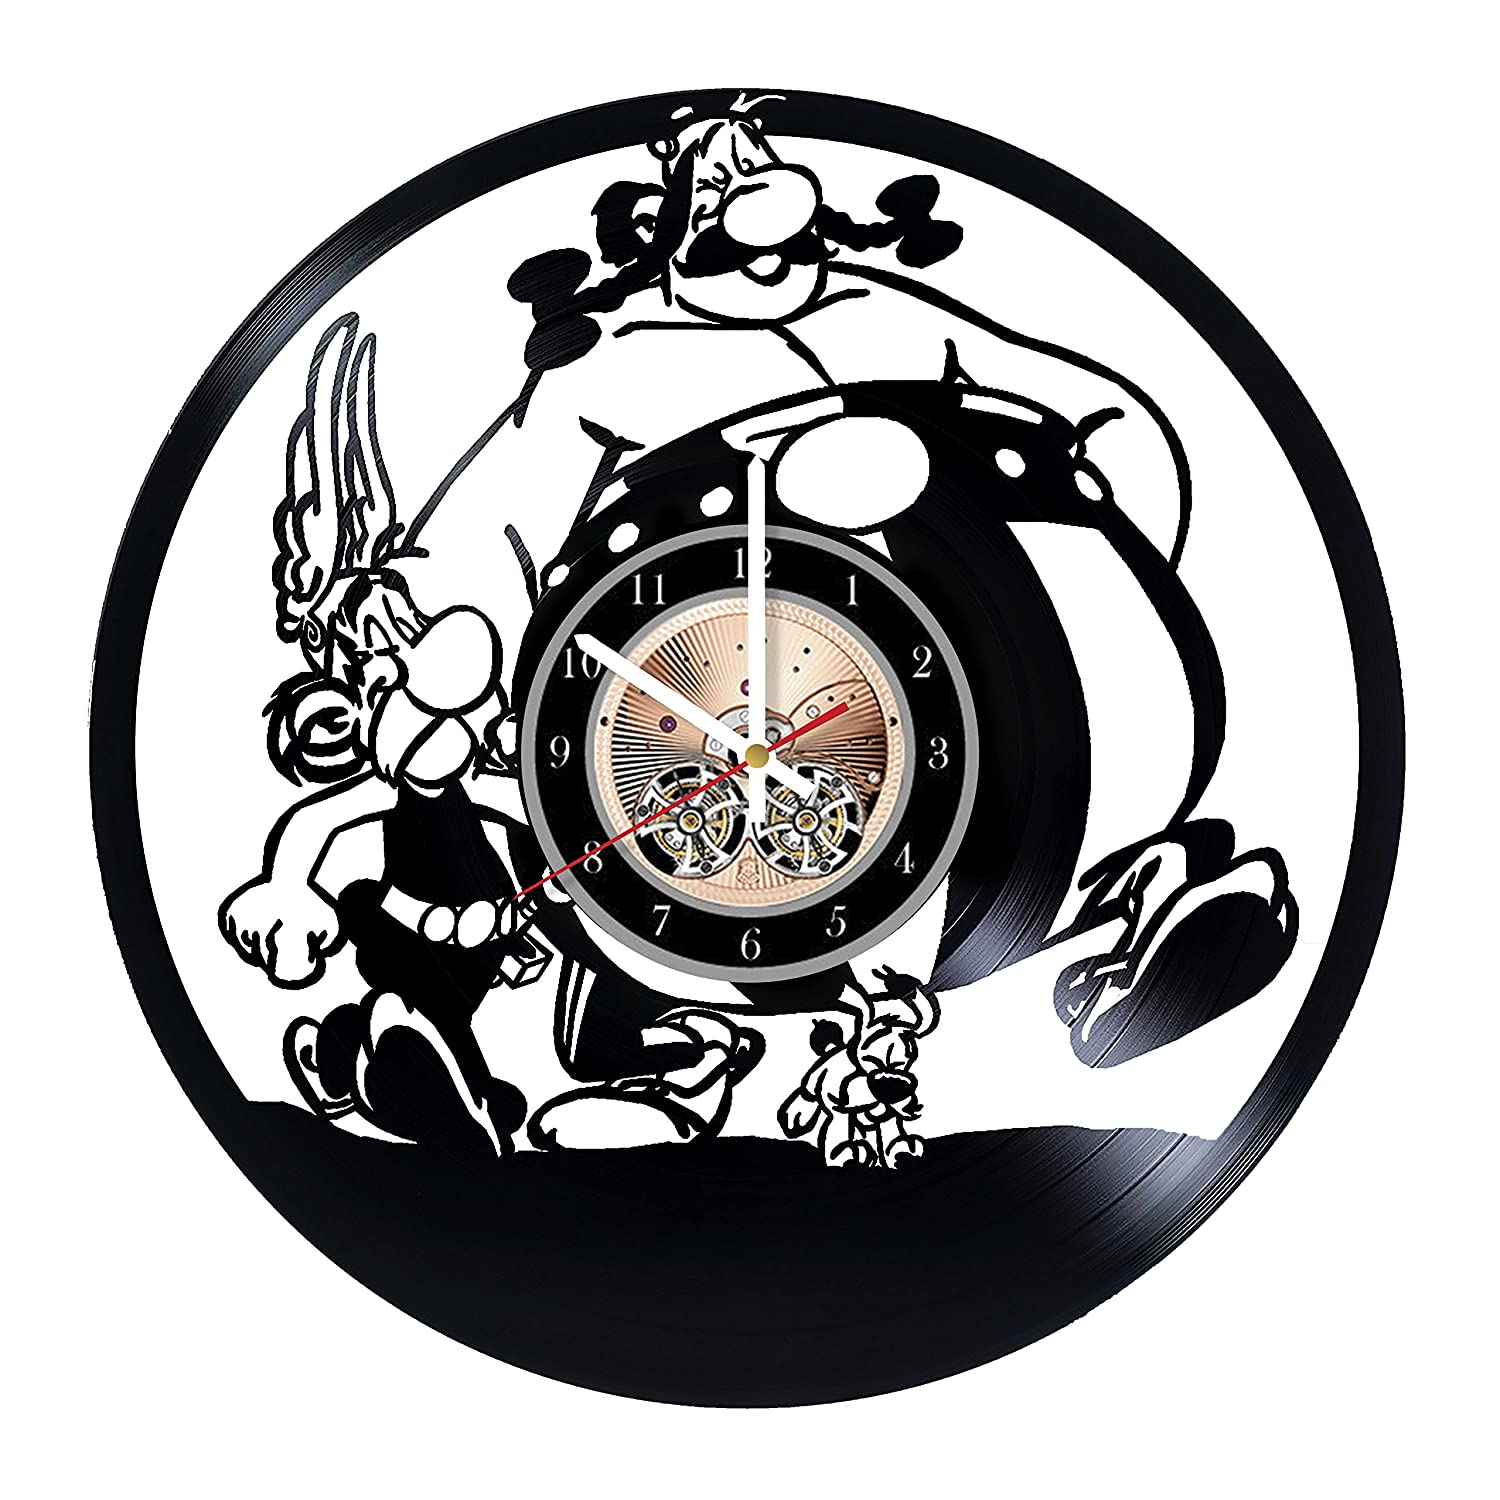 Asterix and Obelix HANDMADE Vinyl Record Wall Clock - Get unique bedroom or living room wall decor - Gift ideas for him and her